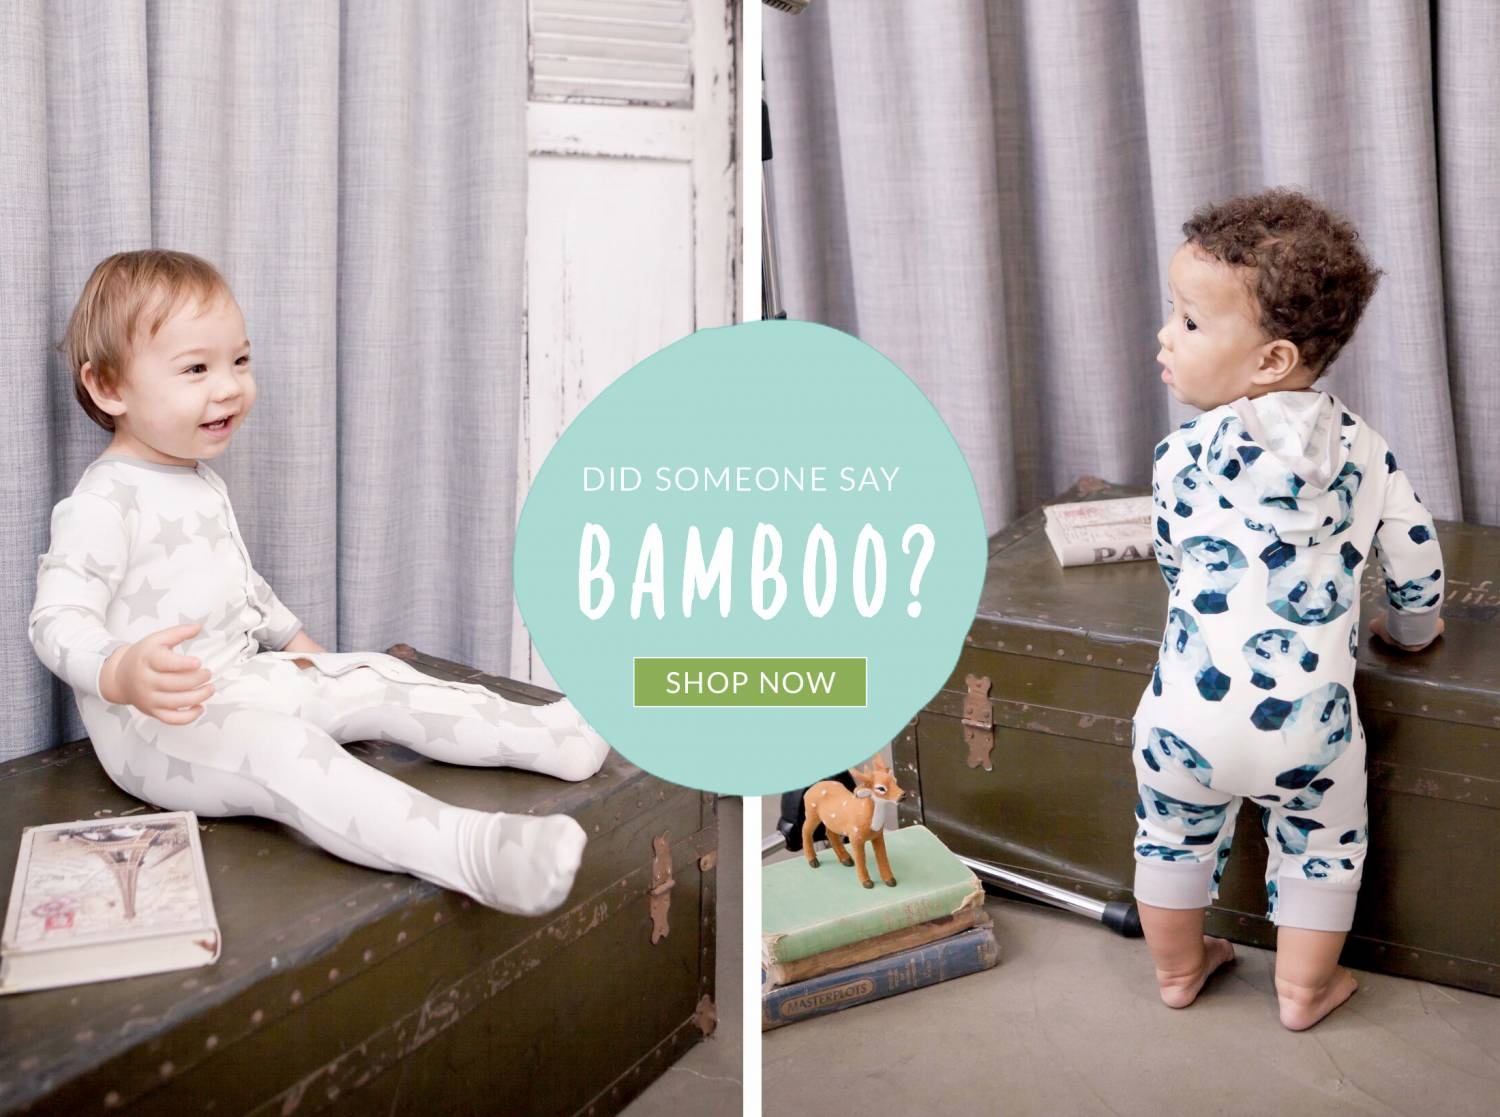 Bamboo Clothing for Children